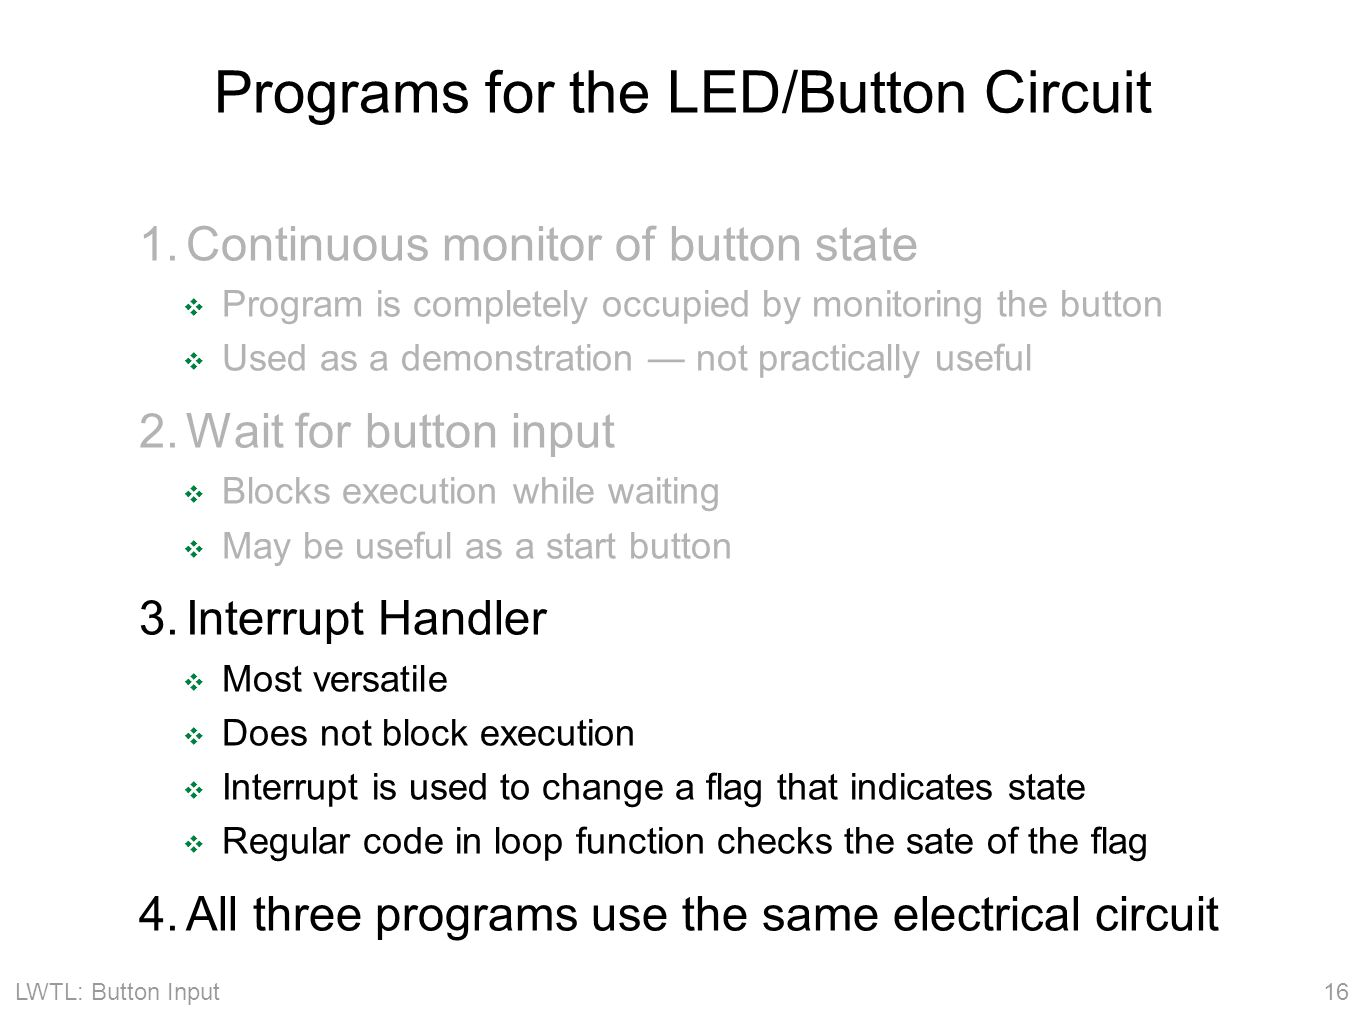 LWTL: Button Input 16 Programs for the LED/Button Circuit 1.Continuous monitor of button state ❖ Program is completely occupied by monitoring the button ❖ Used as a demonstration — not practically useful 2.Wait for button input ❖ Blocks execution while waiting ❖ May be useful as a start button 3.Interrupt Handler ❖ Most versatile ❖ Does not block execution ❖ Interrupt is used to change a flag that indicates state ❖ Regular code in loop function checks the sate of the flag 4.All three programs use the same electrical circuit